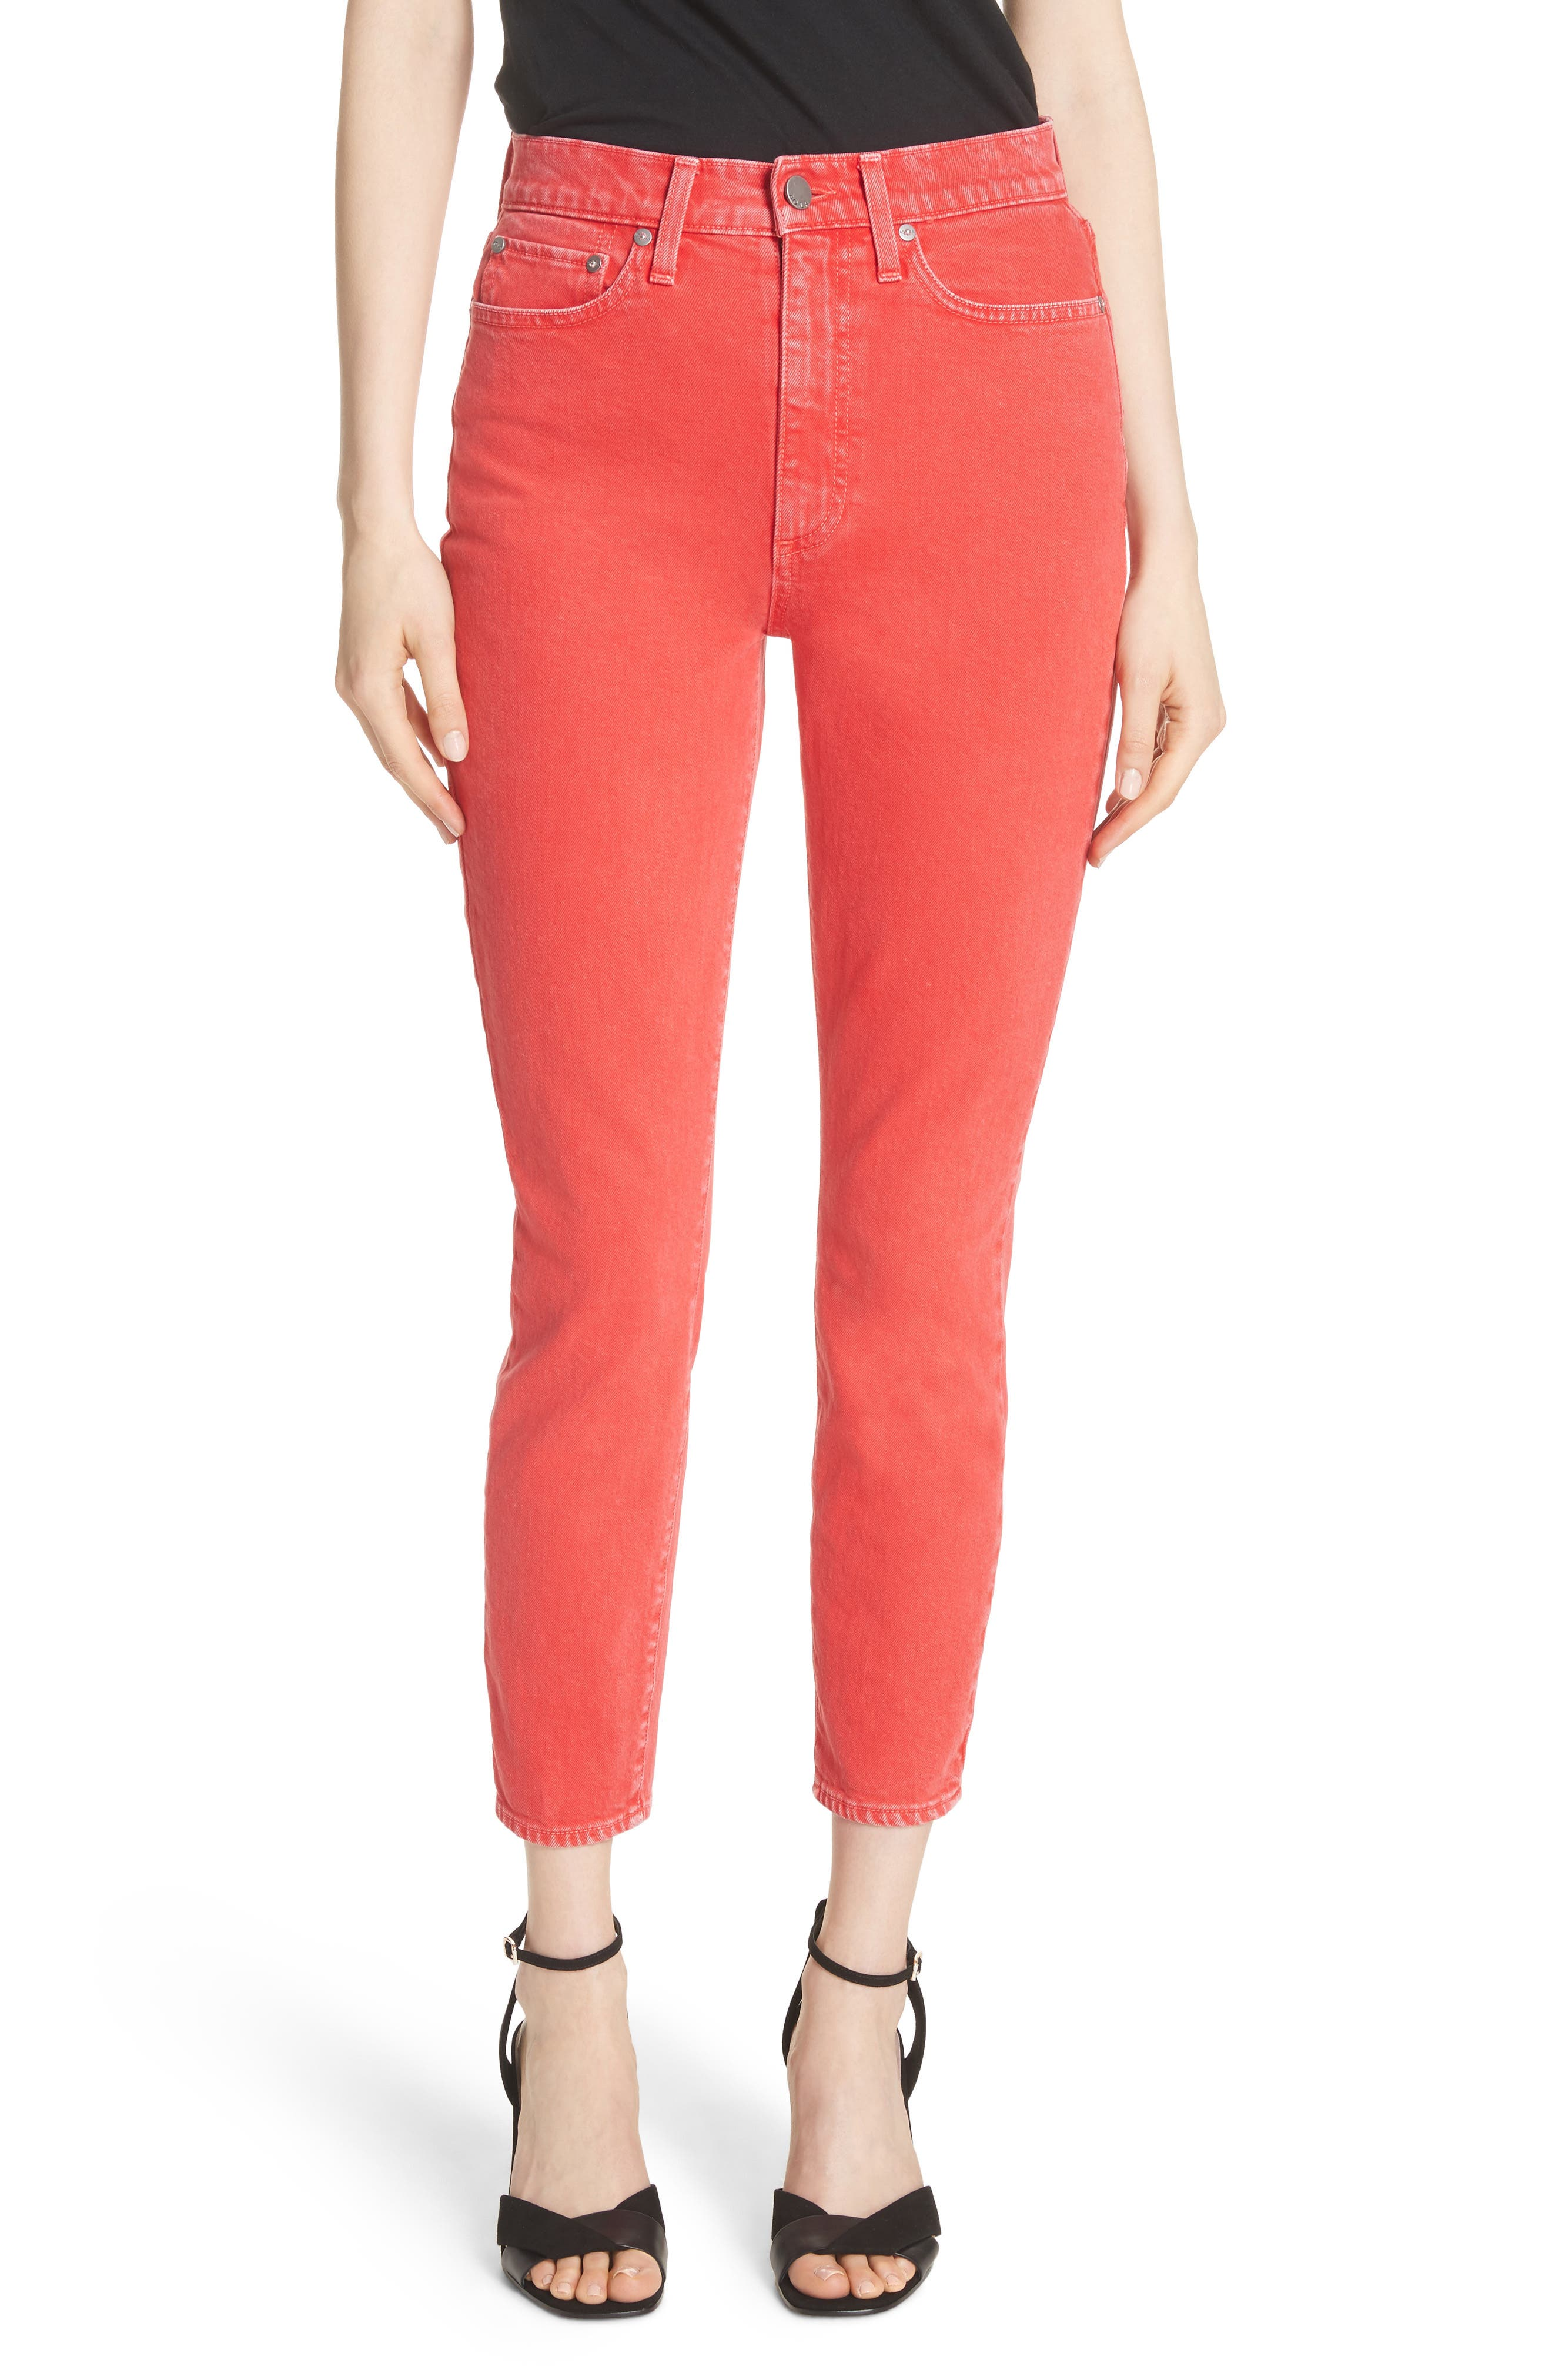 AO.LA Good High Rise Ankle Skinny Jeans,                         Main,                         color,